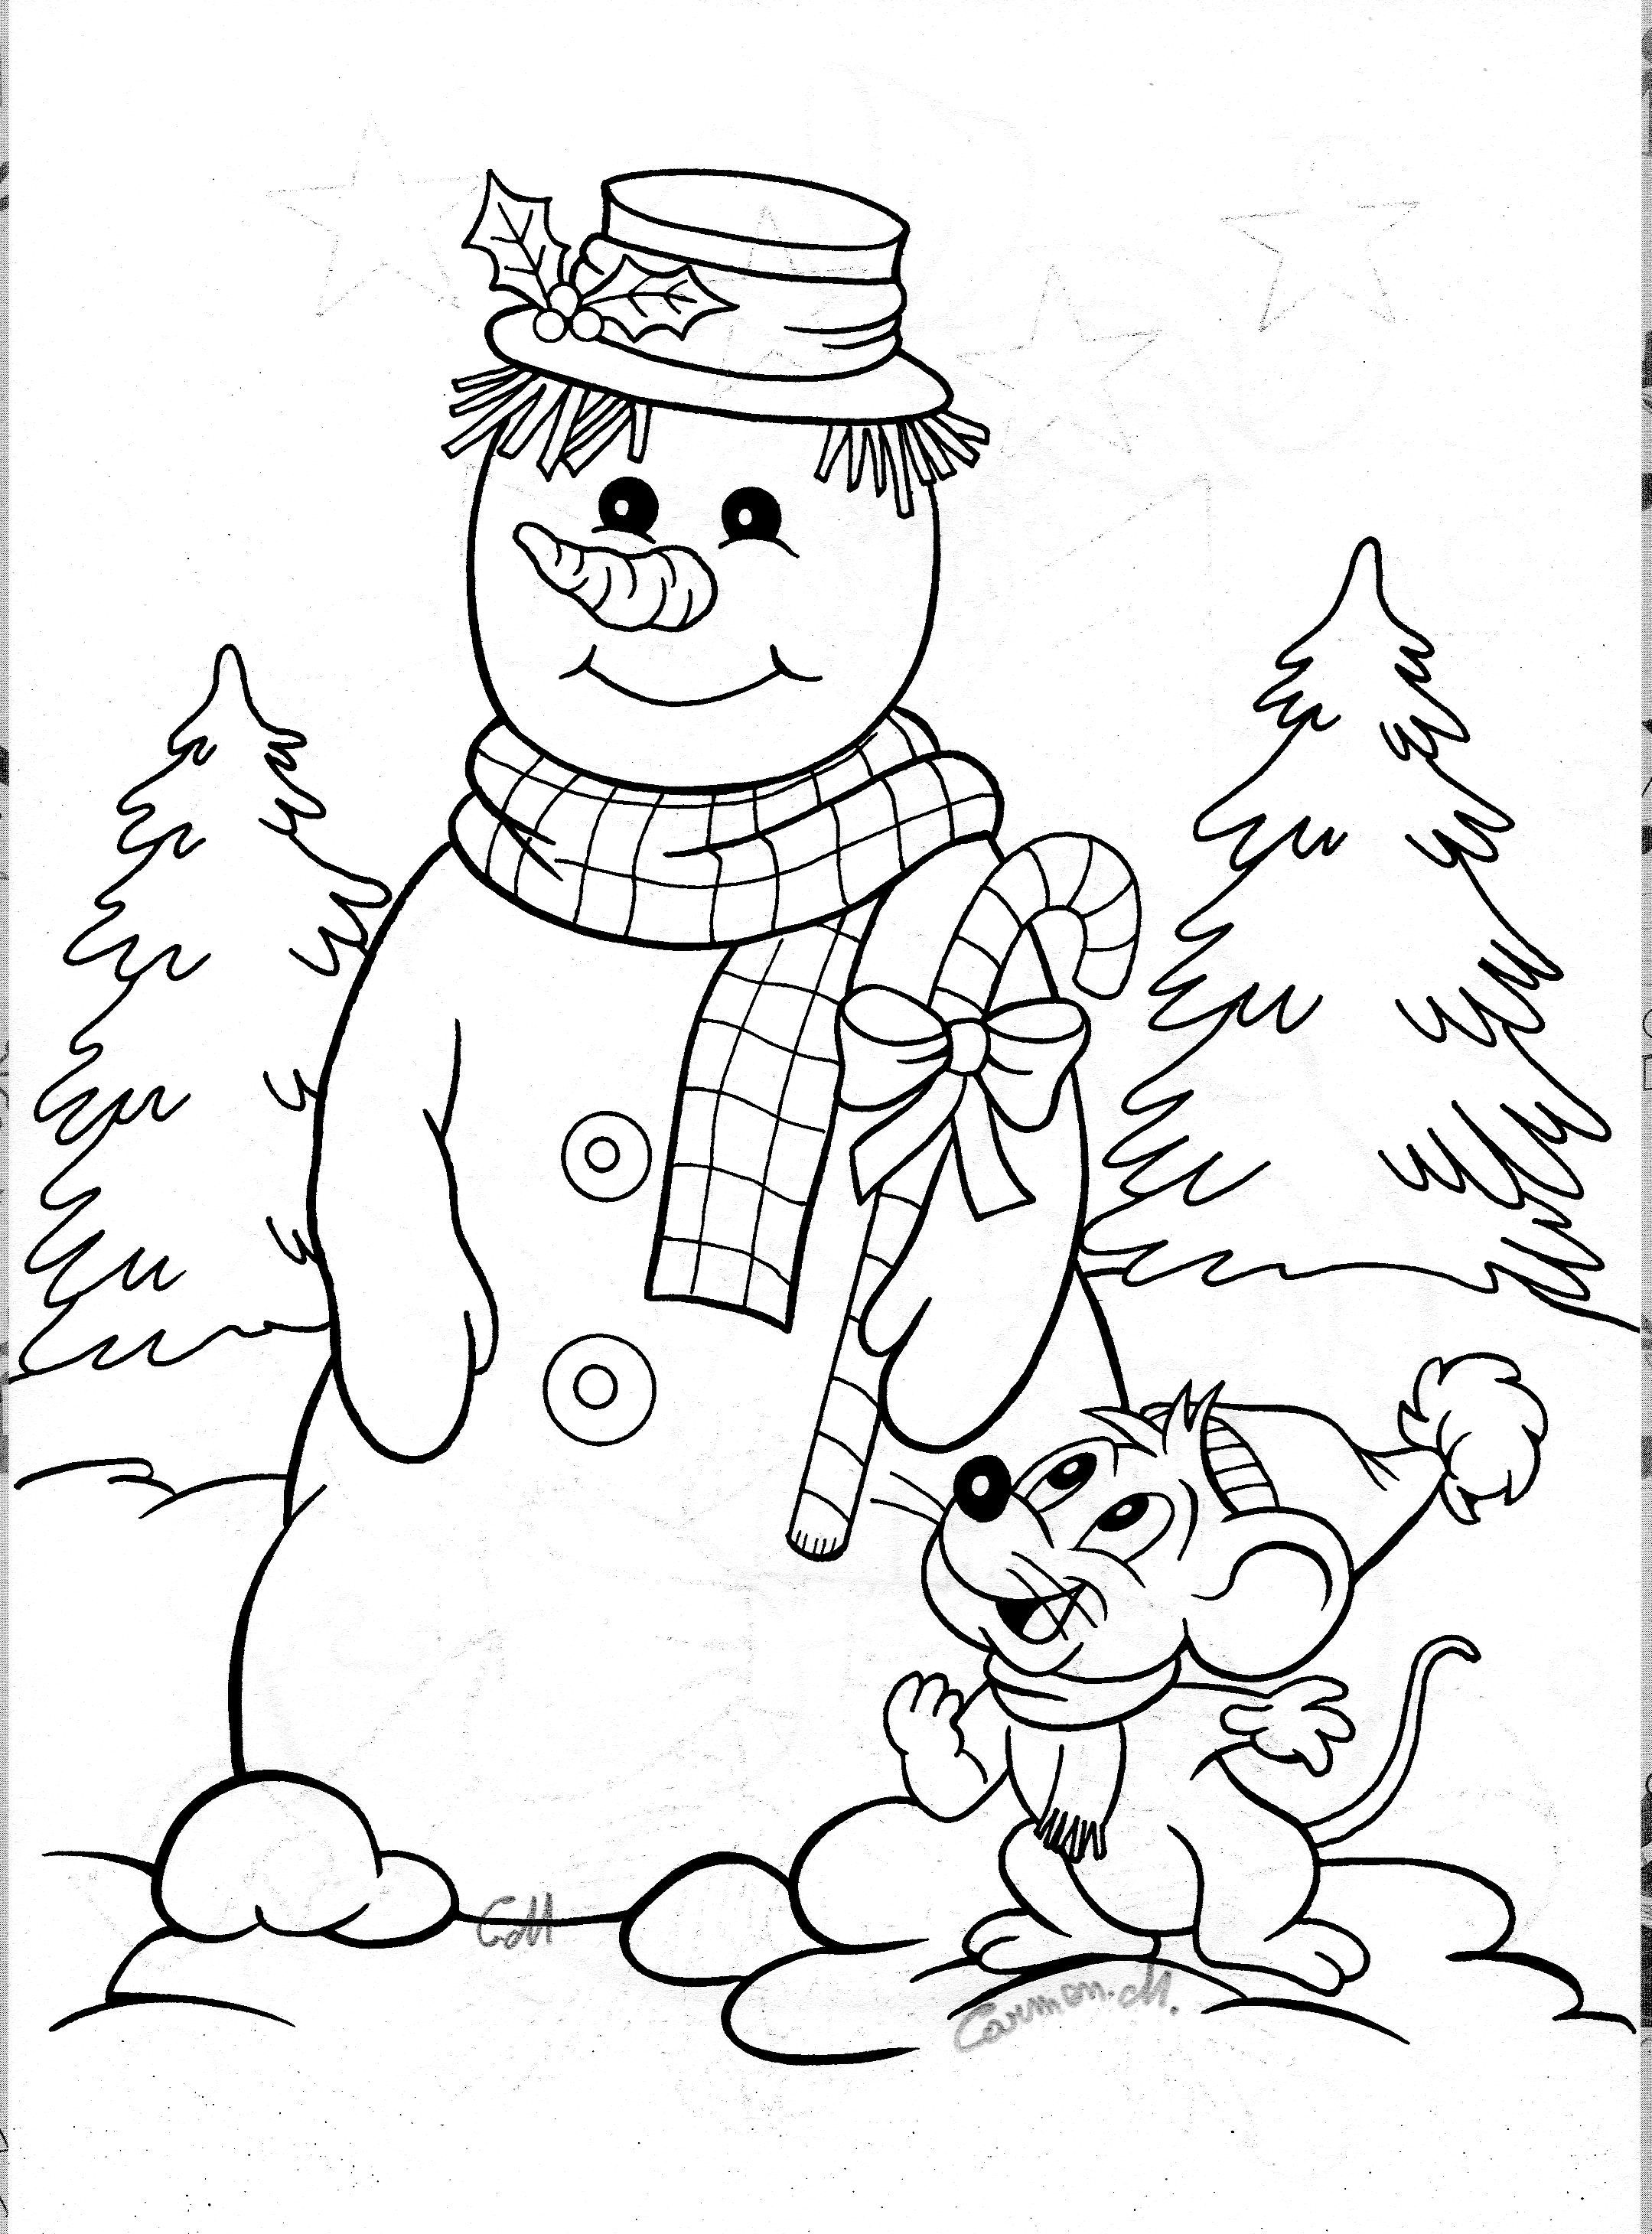 easy snowman coloring pages - photo#32